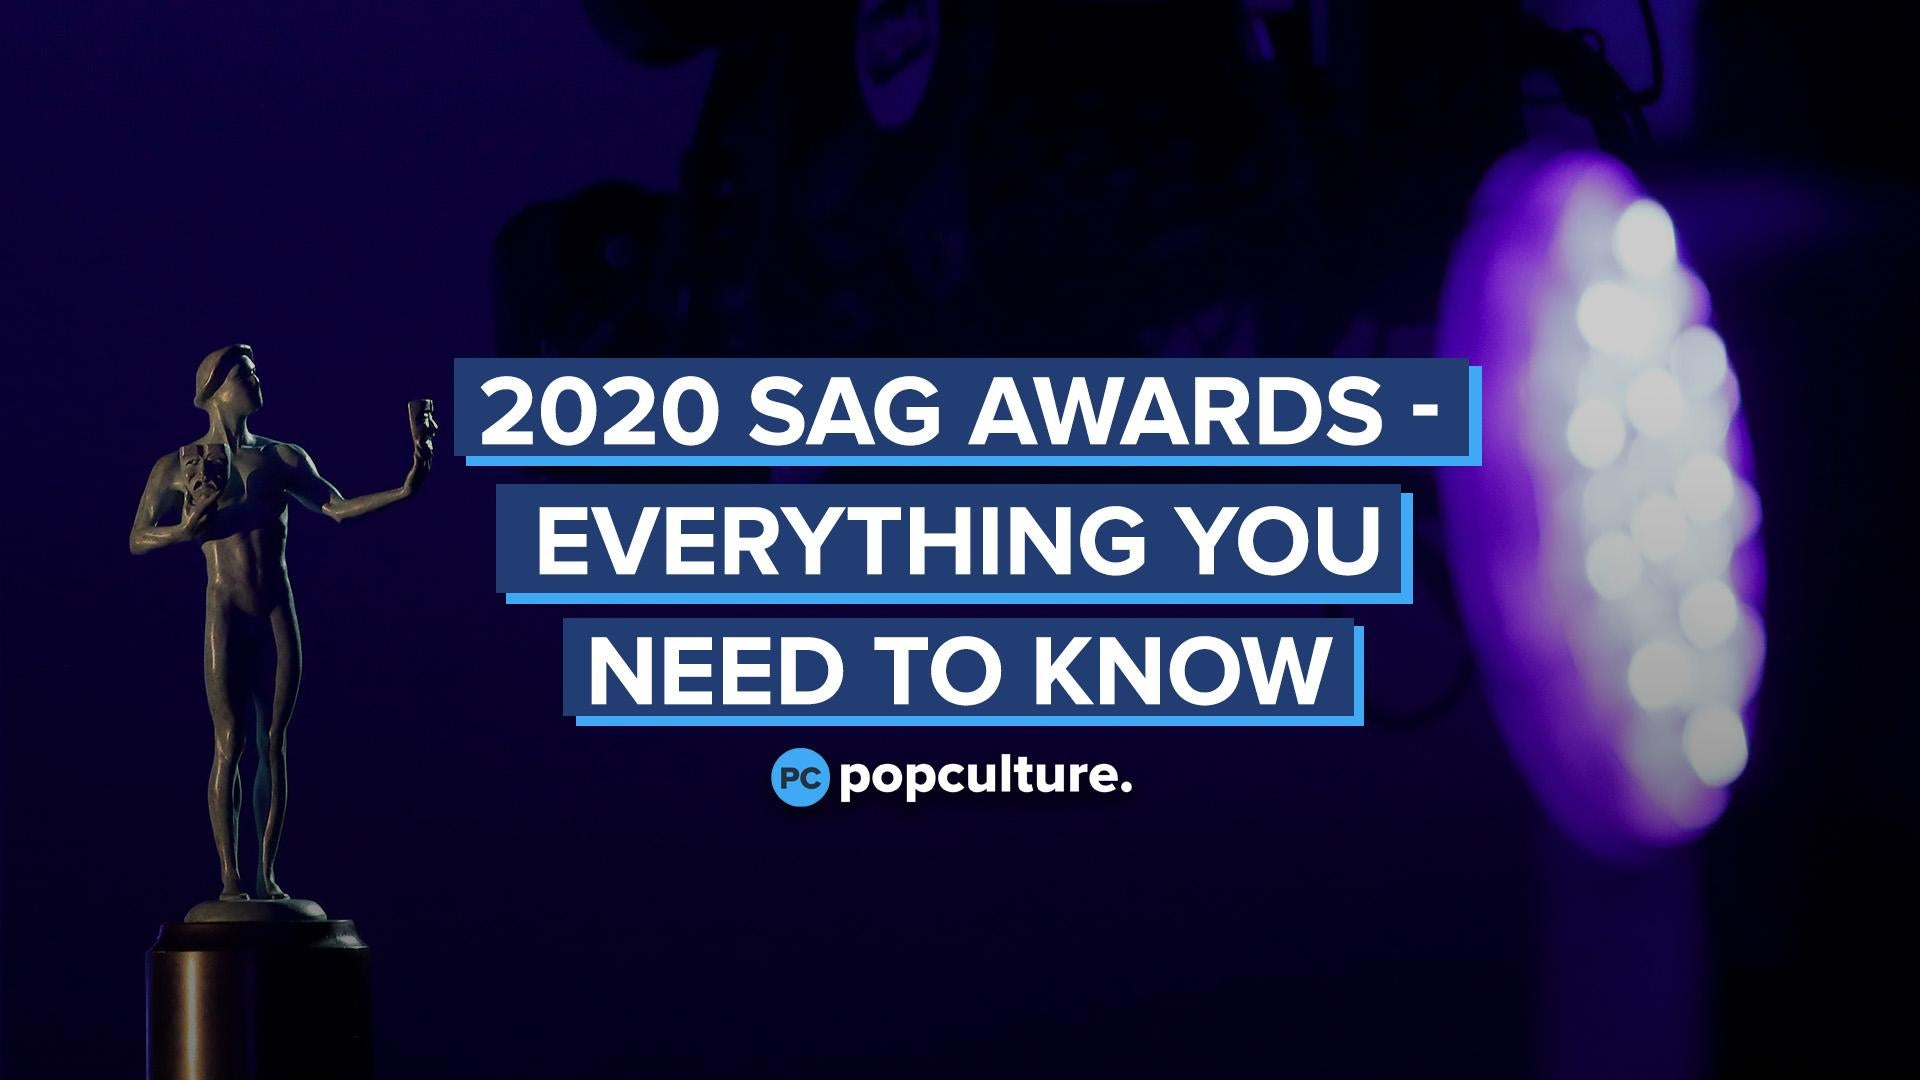 2020 Screen Actors Guild Awards - Everything You Need to Know screen capture